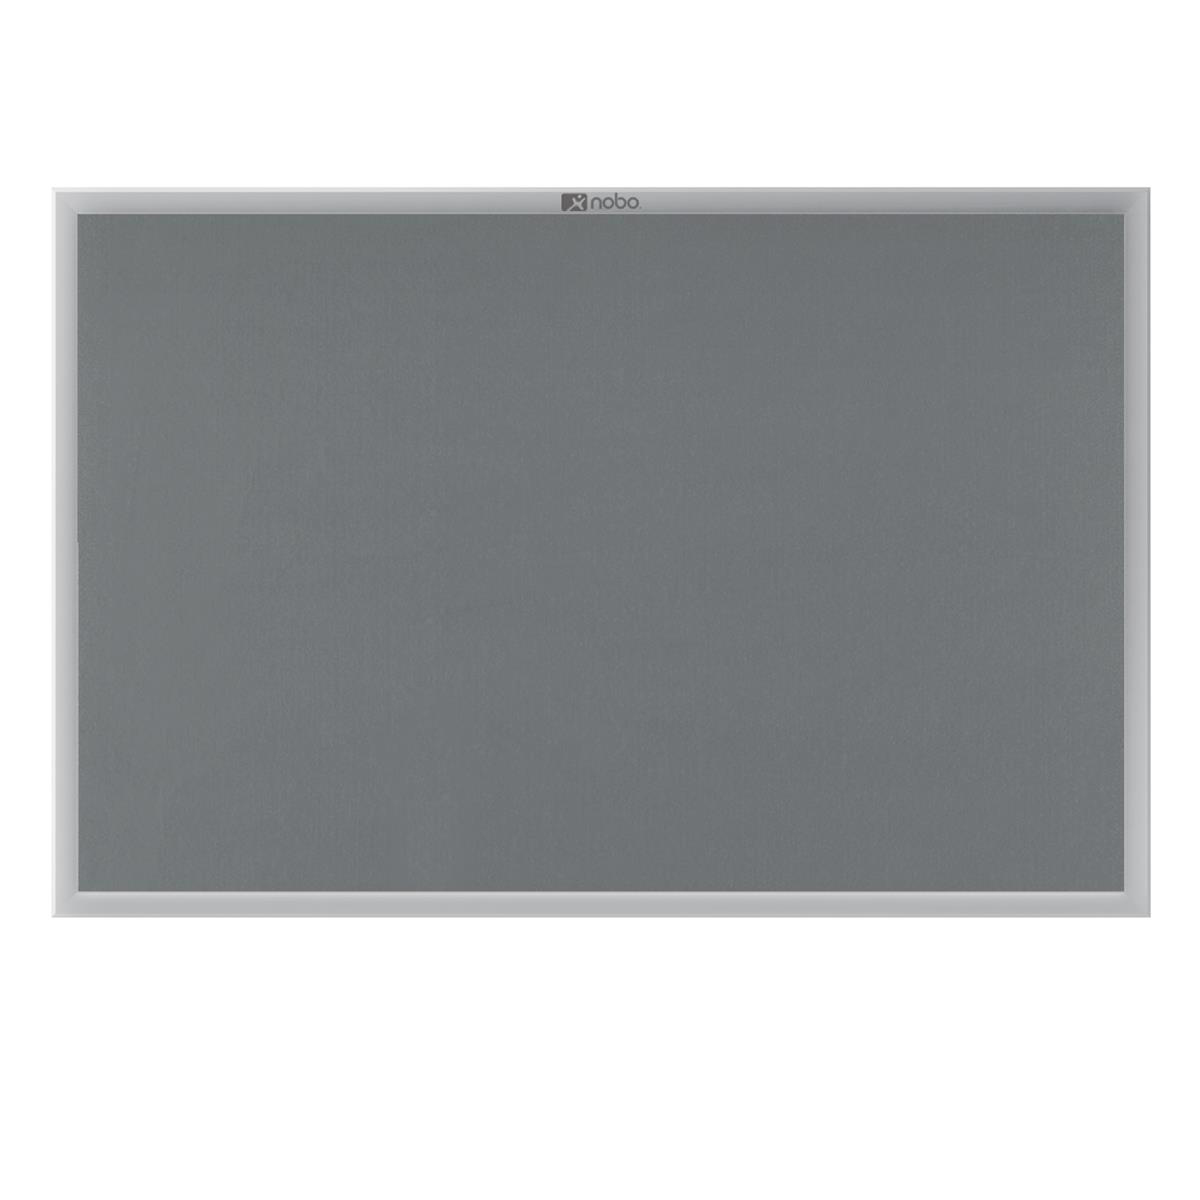 Image for **Nobo EuroPlus Felt Noticeboard with Fixings and Aluminium Frame W1200xH900mm Grey Ref 30230158